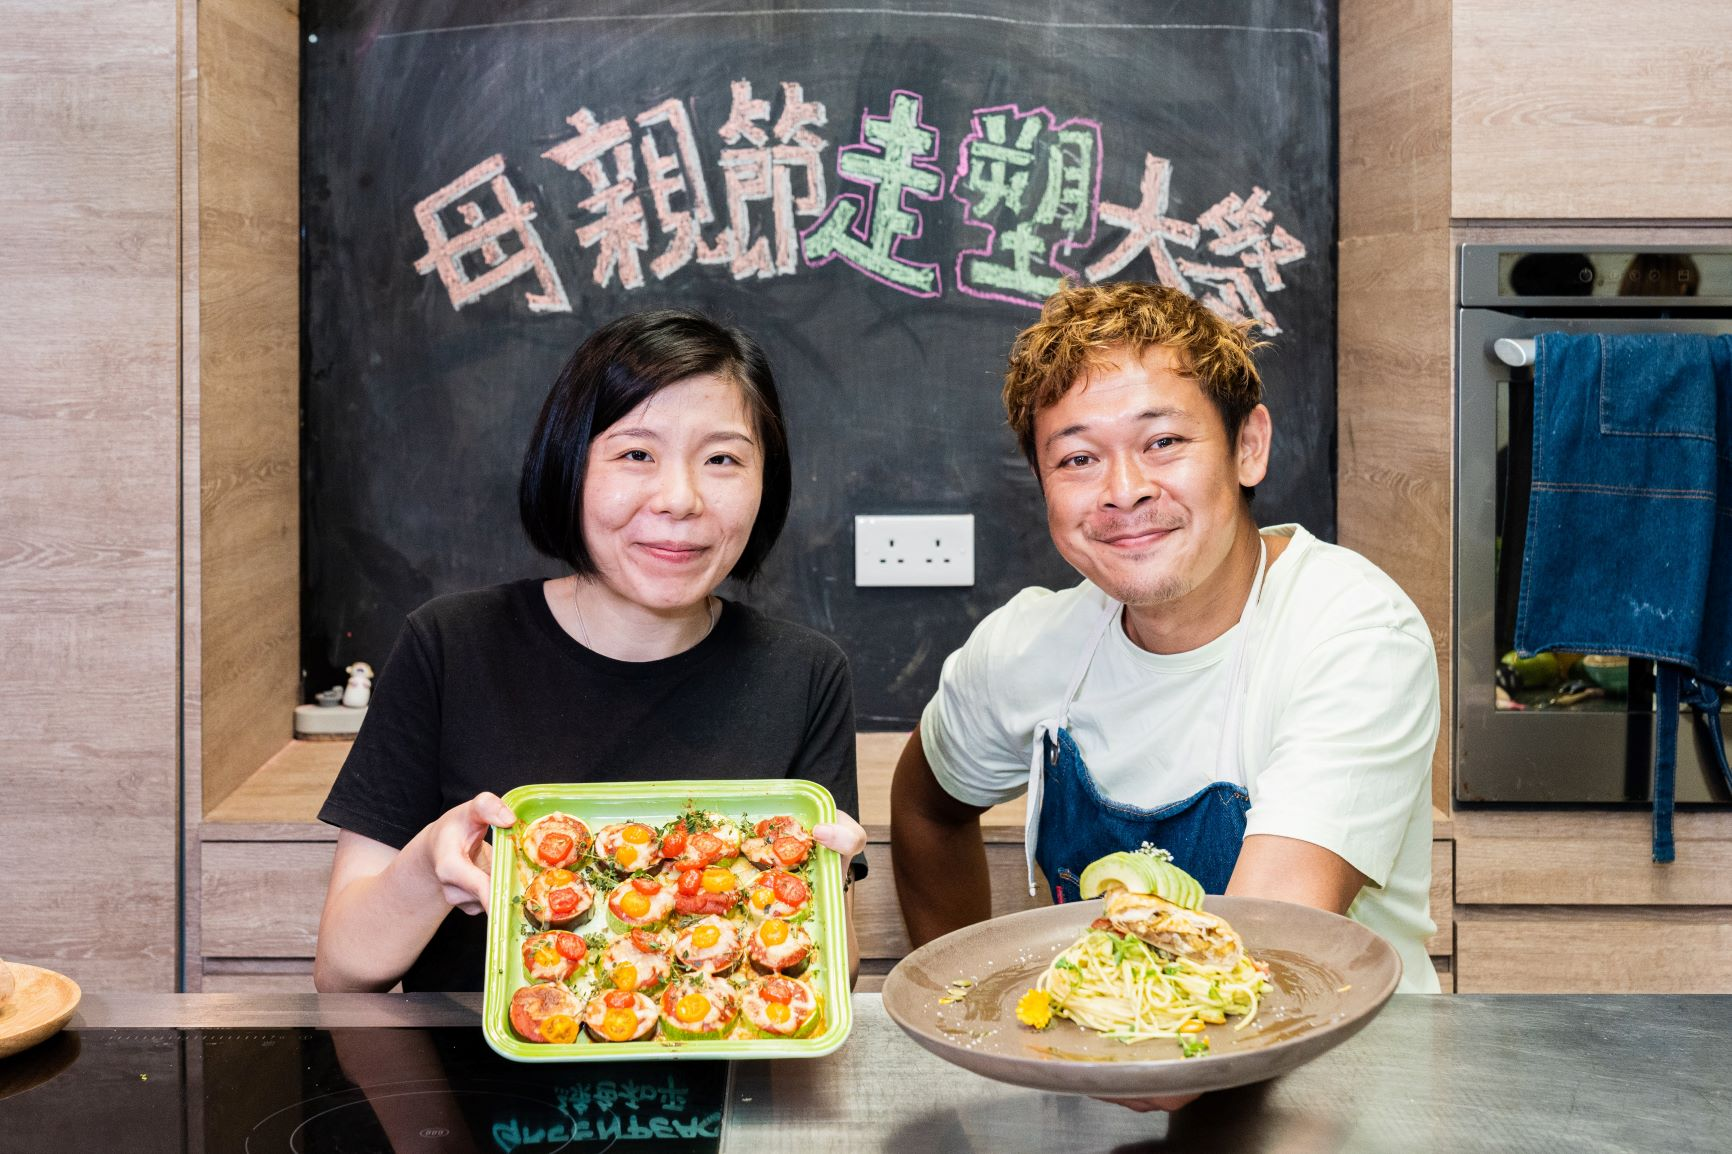 Joey Leung + Greenpeace's online cooking class: love to all mothers including Mother Earth